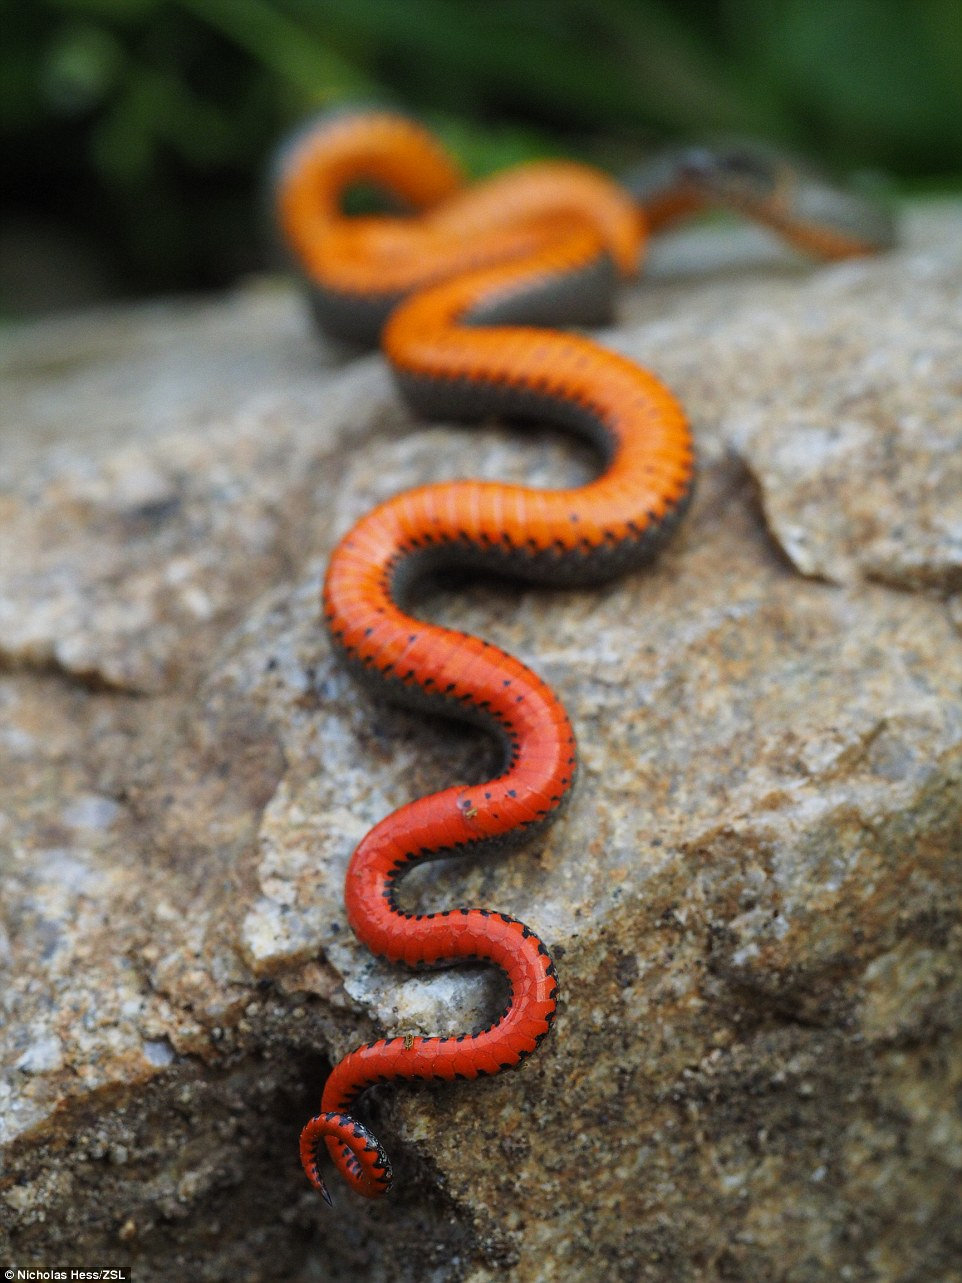 A young photographer in Verdugo Mountains, California, snapped this ring necked snake and named it Underside Madness. The shot was a runner-up